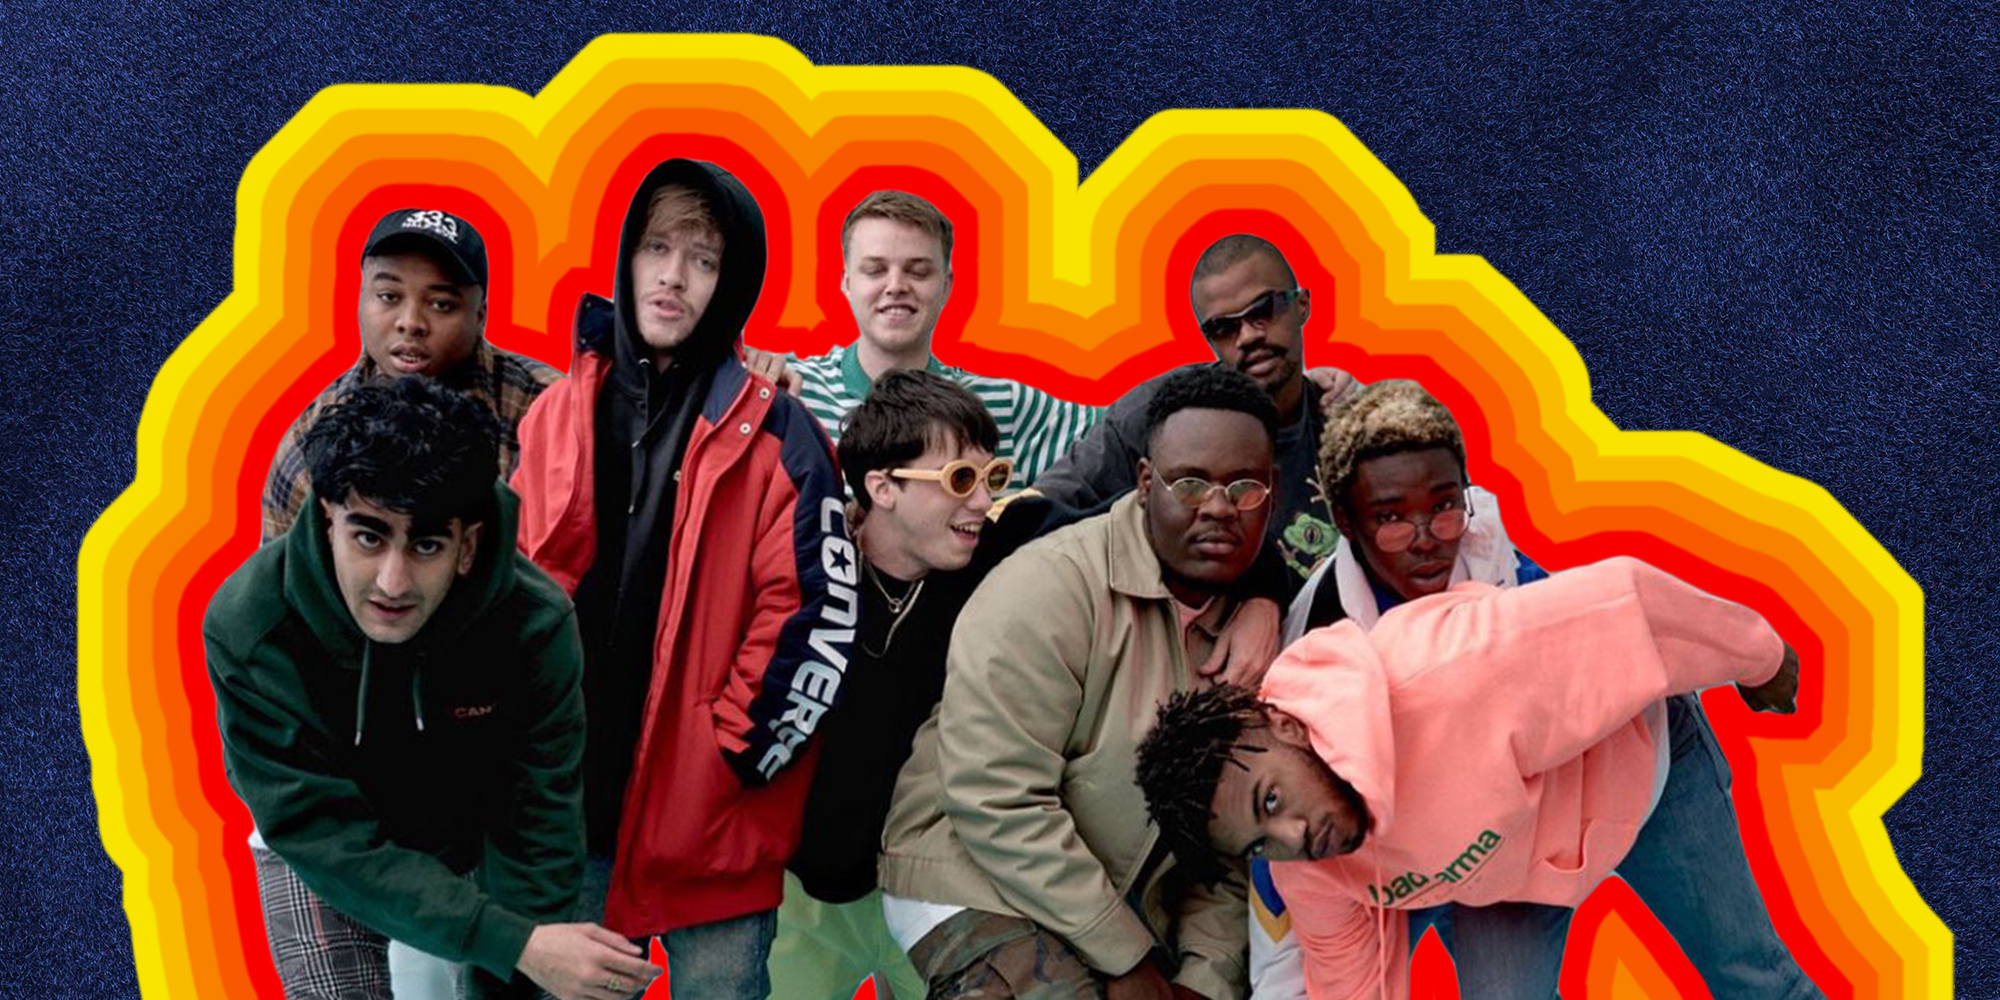 Brockhampton The Best Boy Band Since One Direction Is